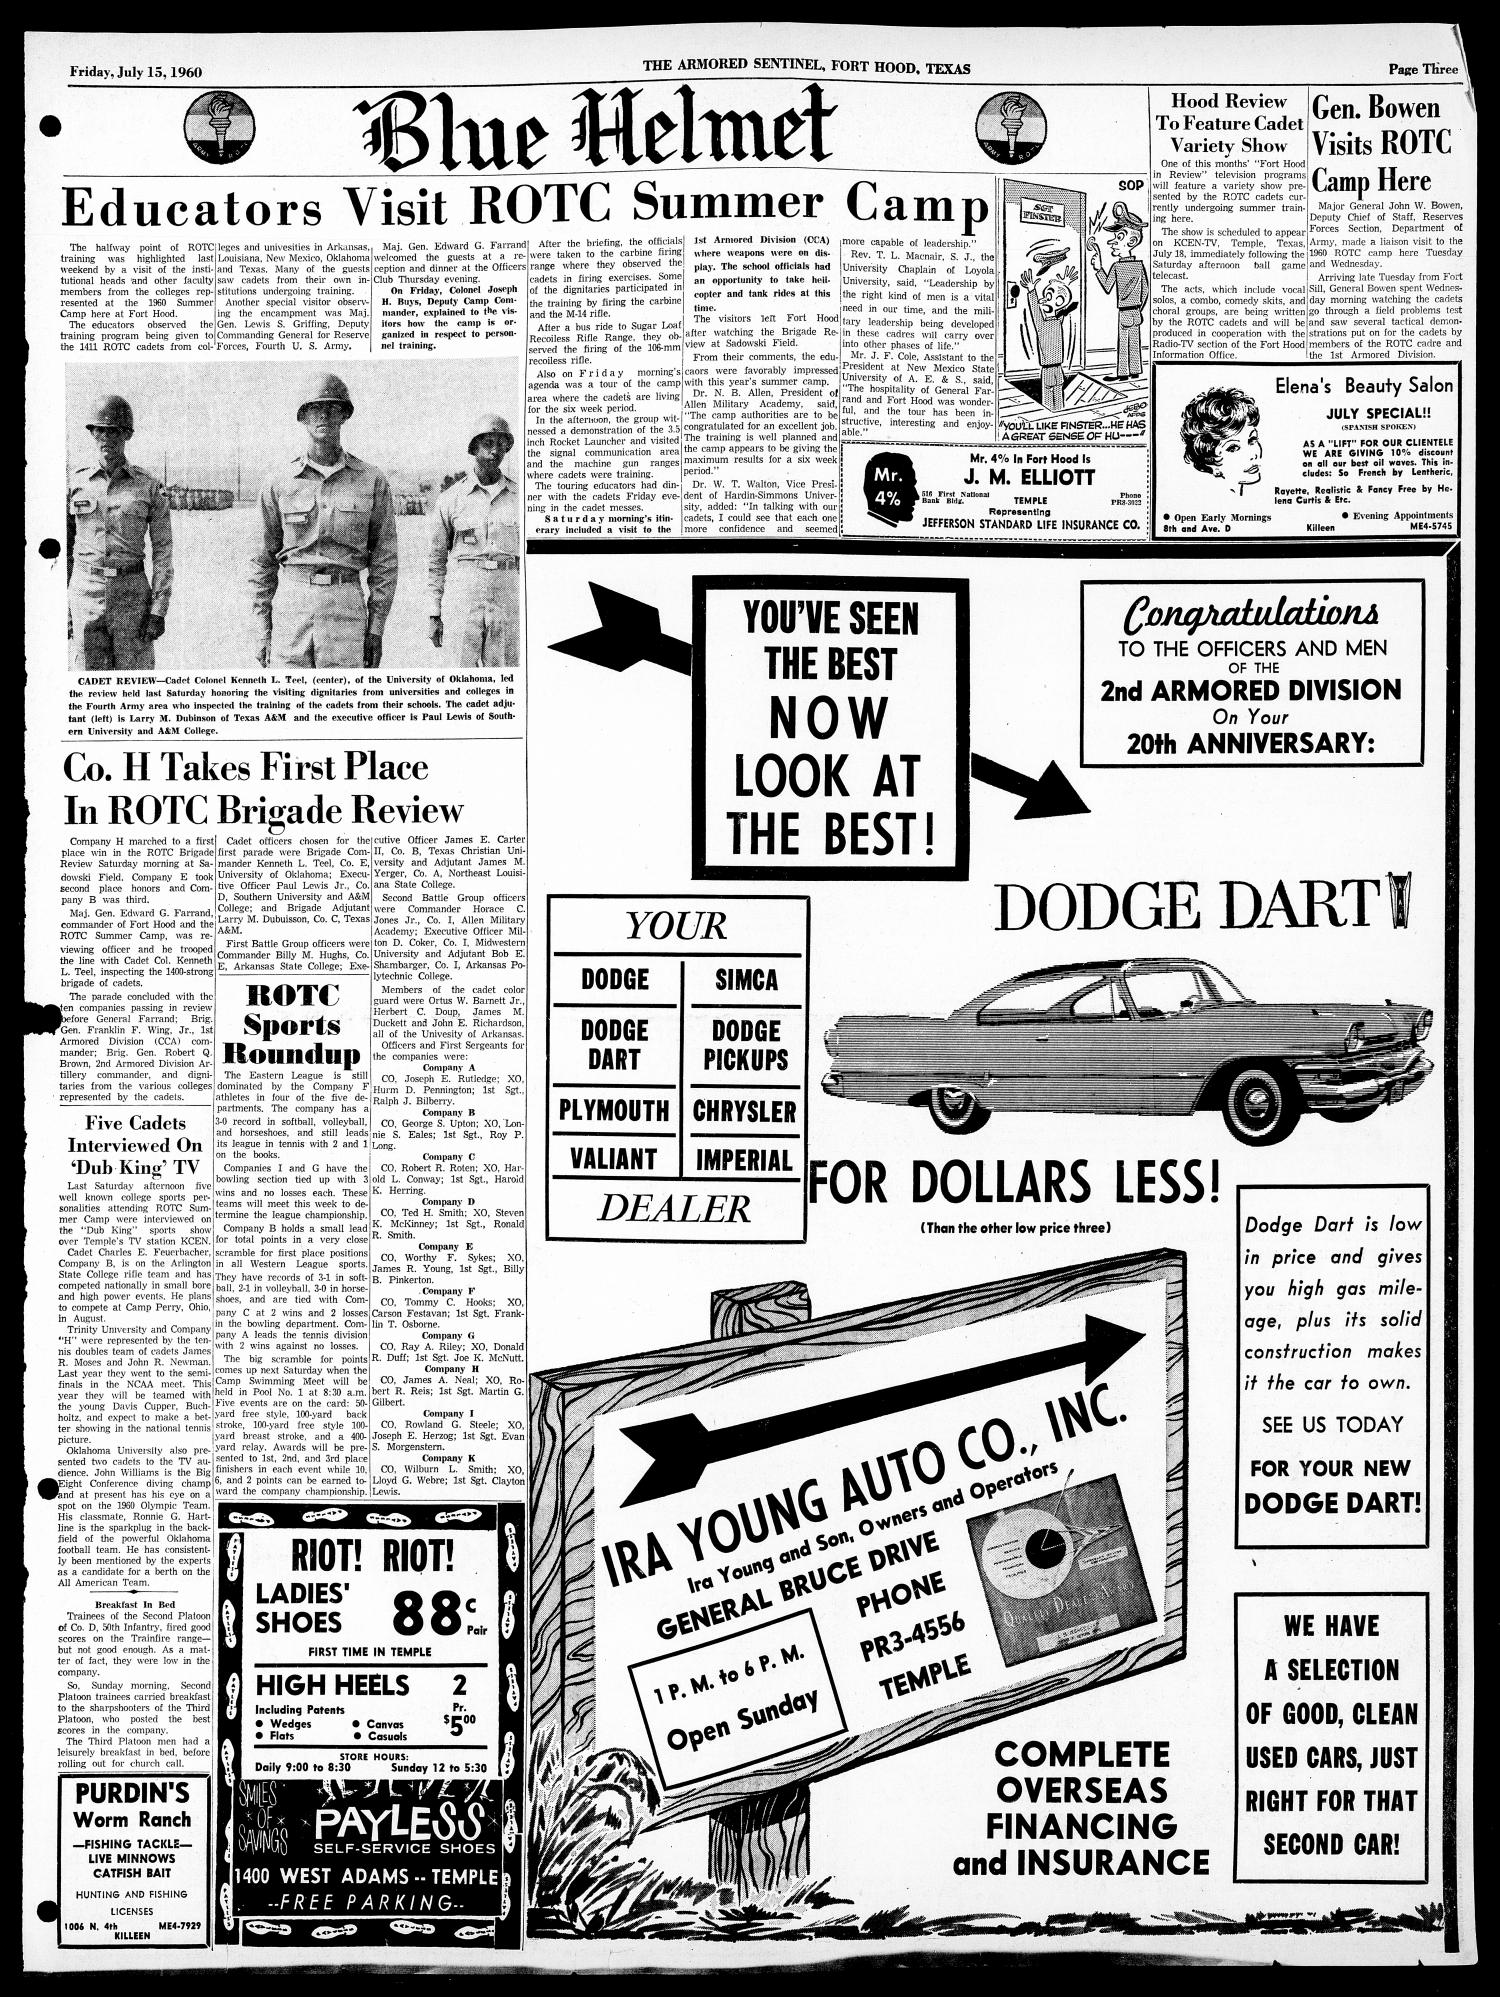 New Left Review 3 (1960)